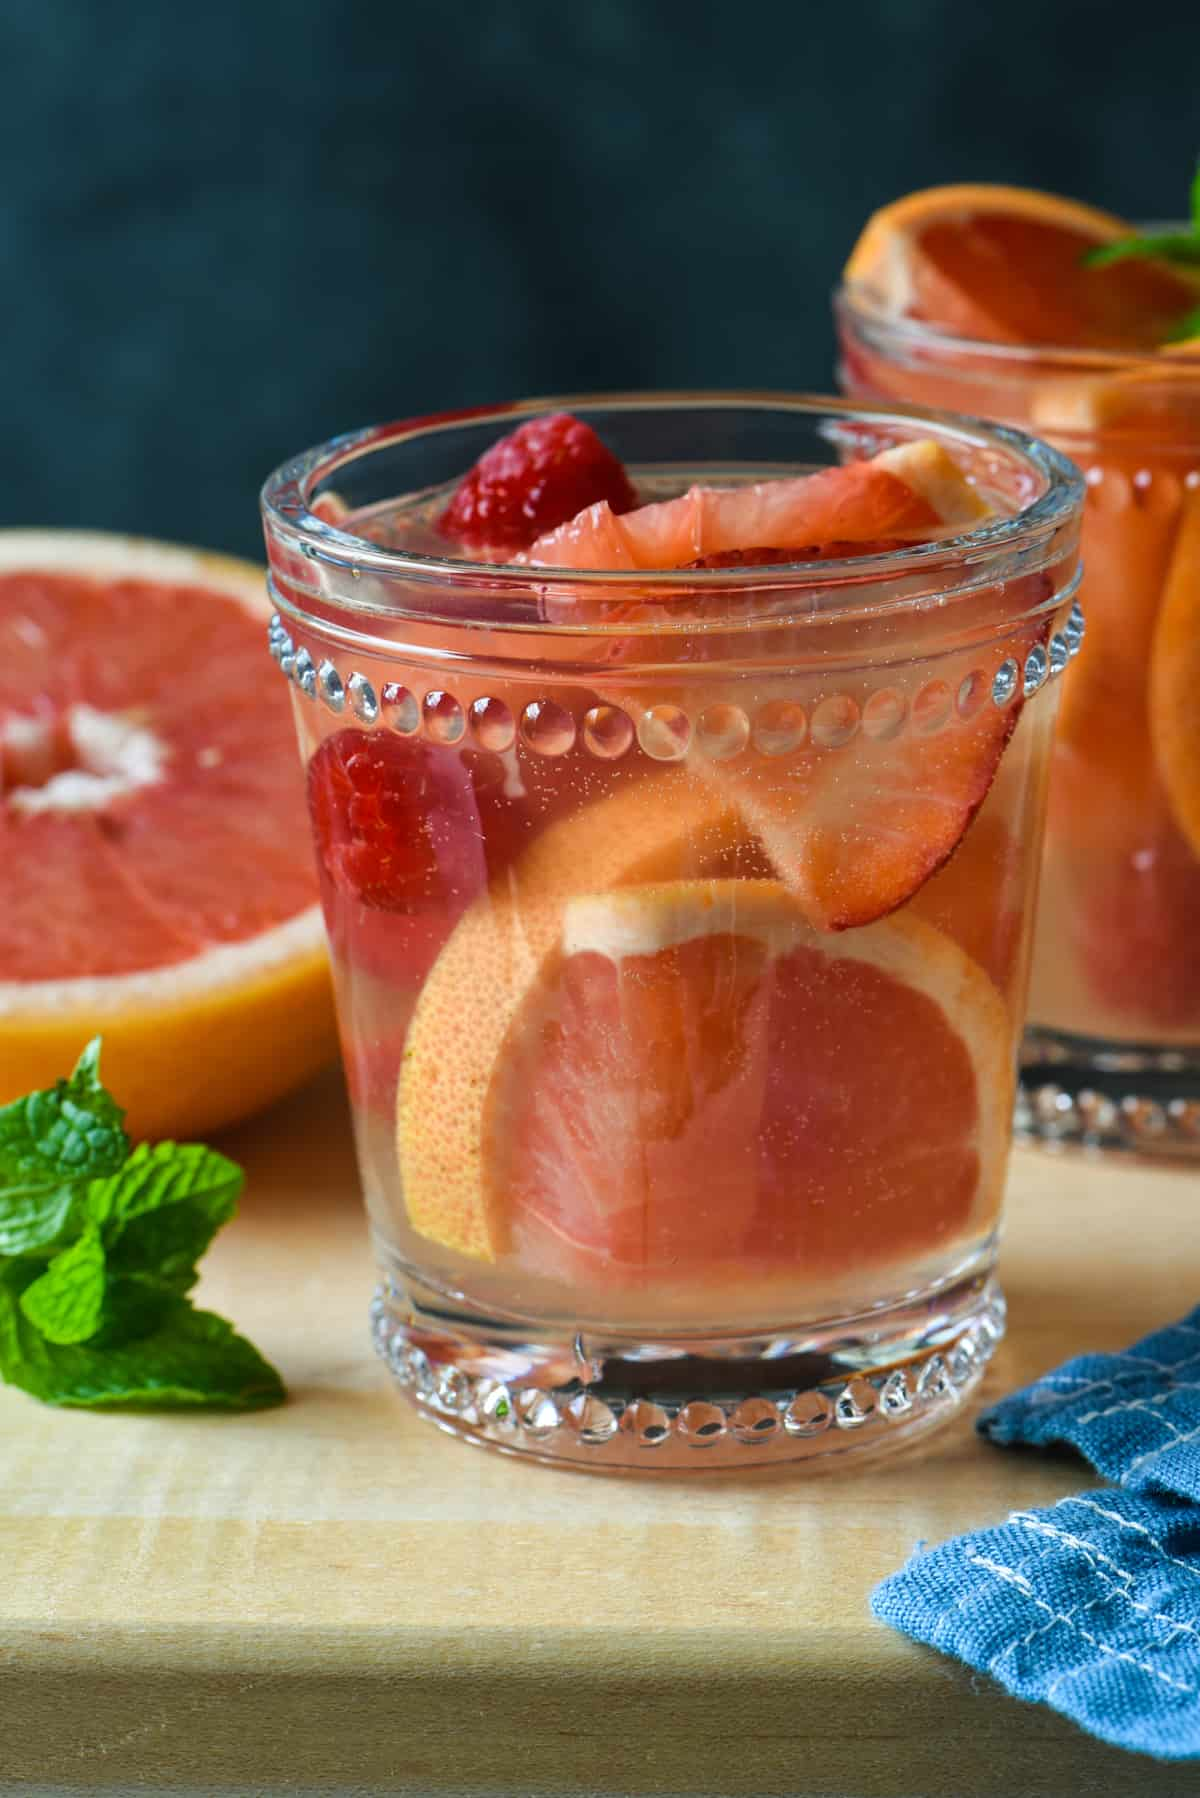 Grapefruit Sangria + 11 Grapefruit Recipes to Brighten Your Winter - Bring some happy flavor to a cold day with an appetizer, cocktail, breakfast, salad, lunch or dinner celebrating juicy, sweet grapefruit! | foxeslovelemons.com